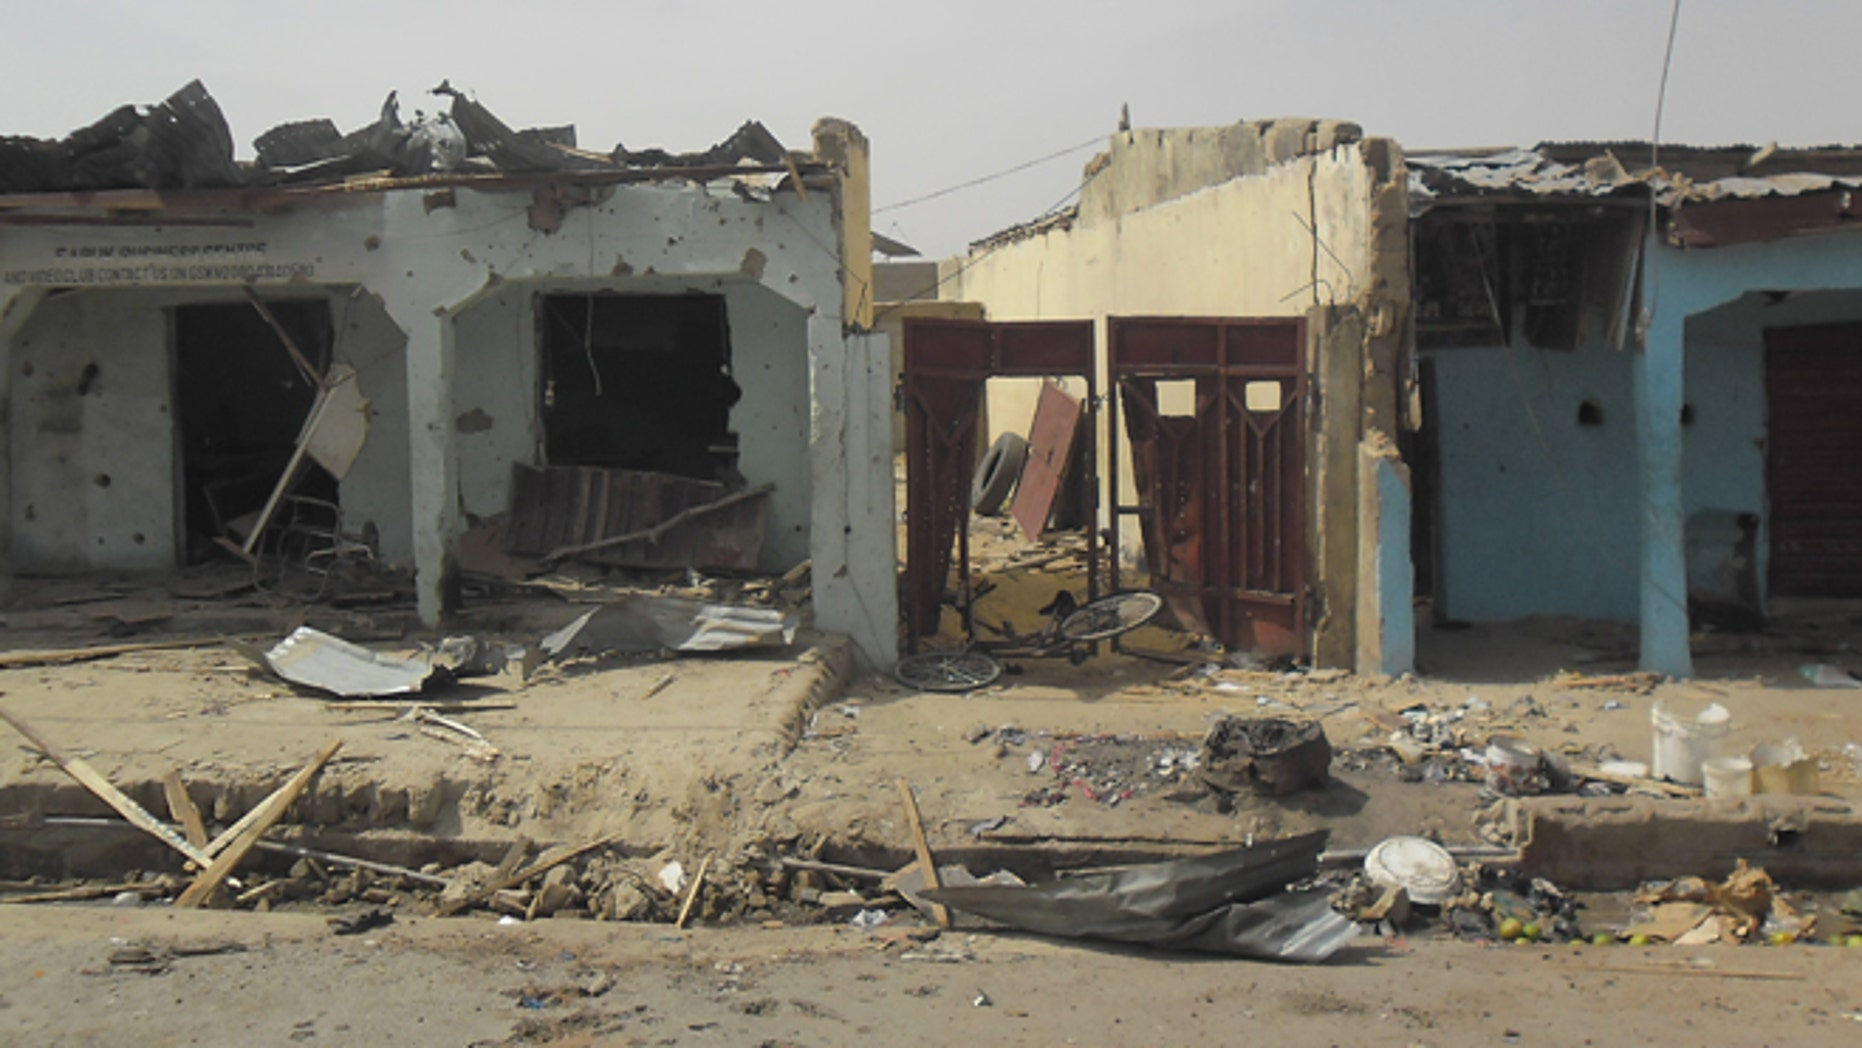 June 18, 2014: Bloodstains seen on the street and damage buildings following a suicide bomb explosion at a World cup viewing center in Damaturu, Nigeria. There was no immediate claim for the blast but Boko Haram was suspected.